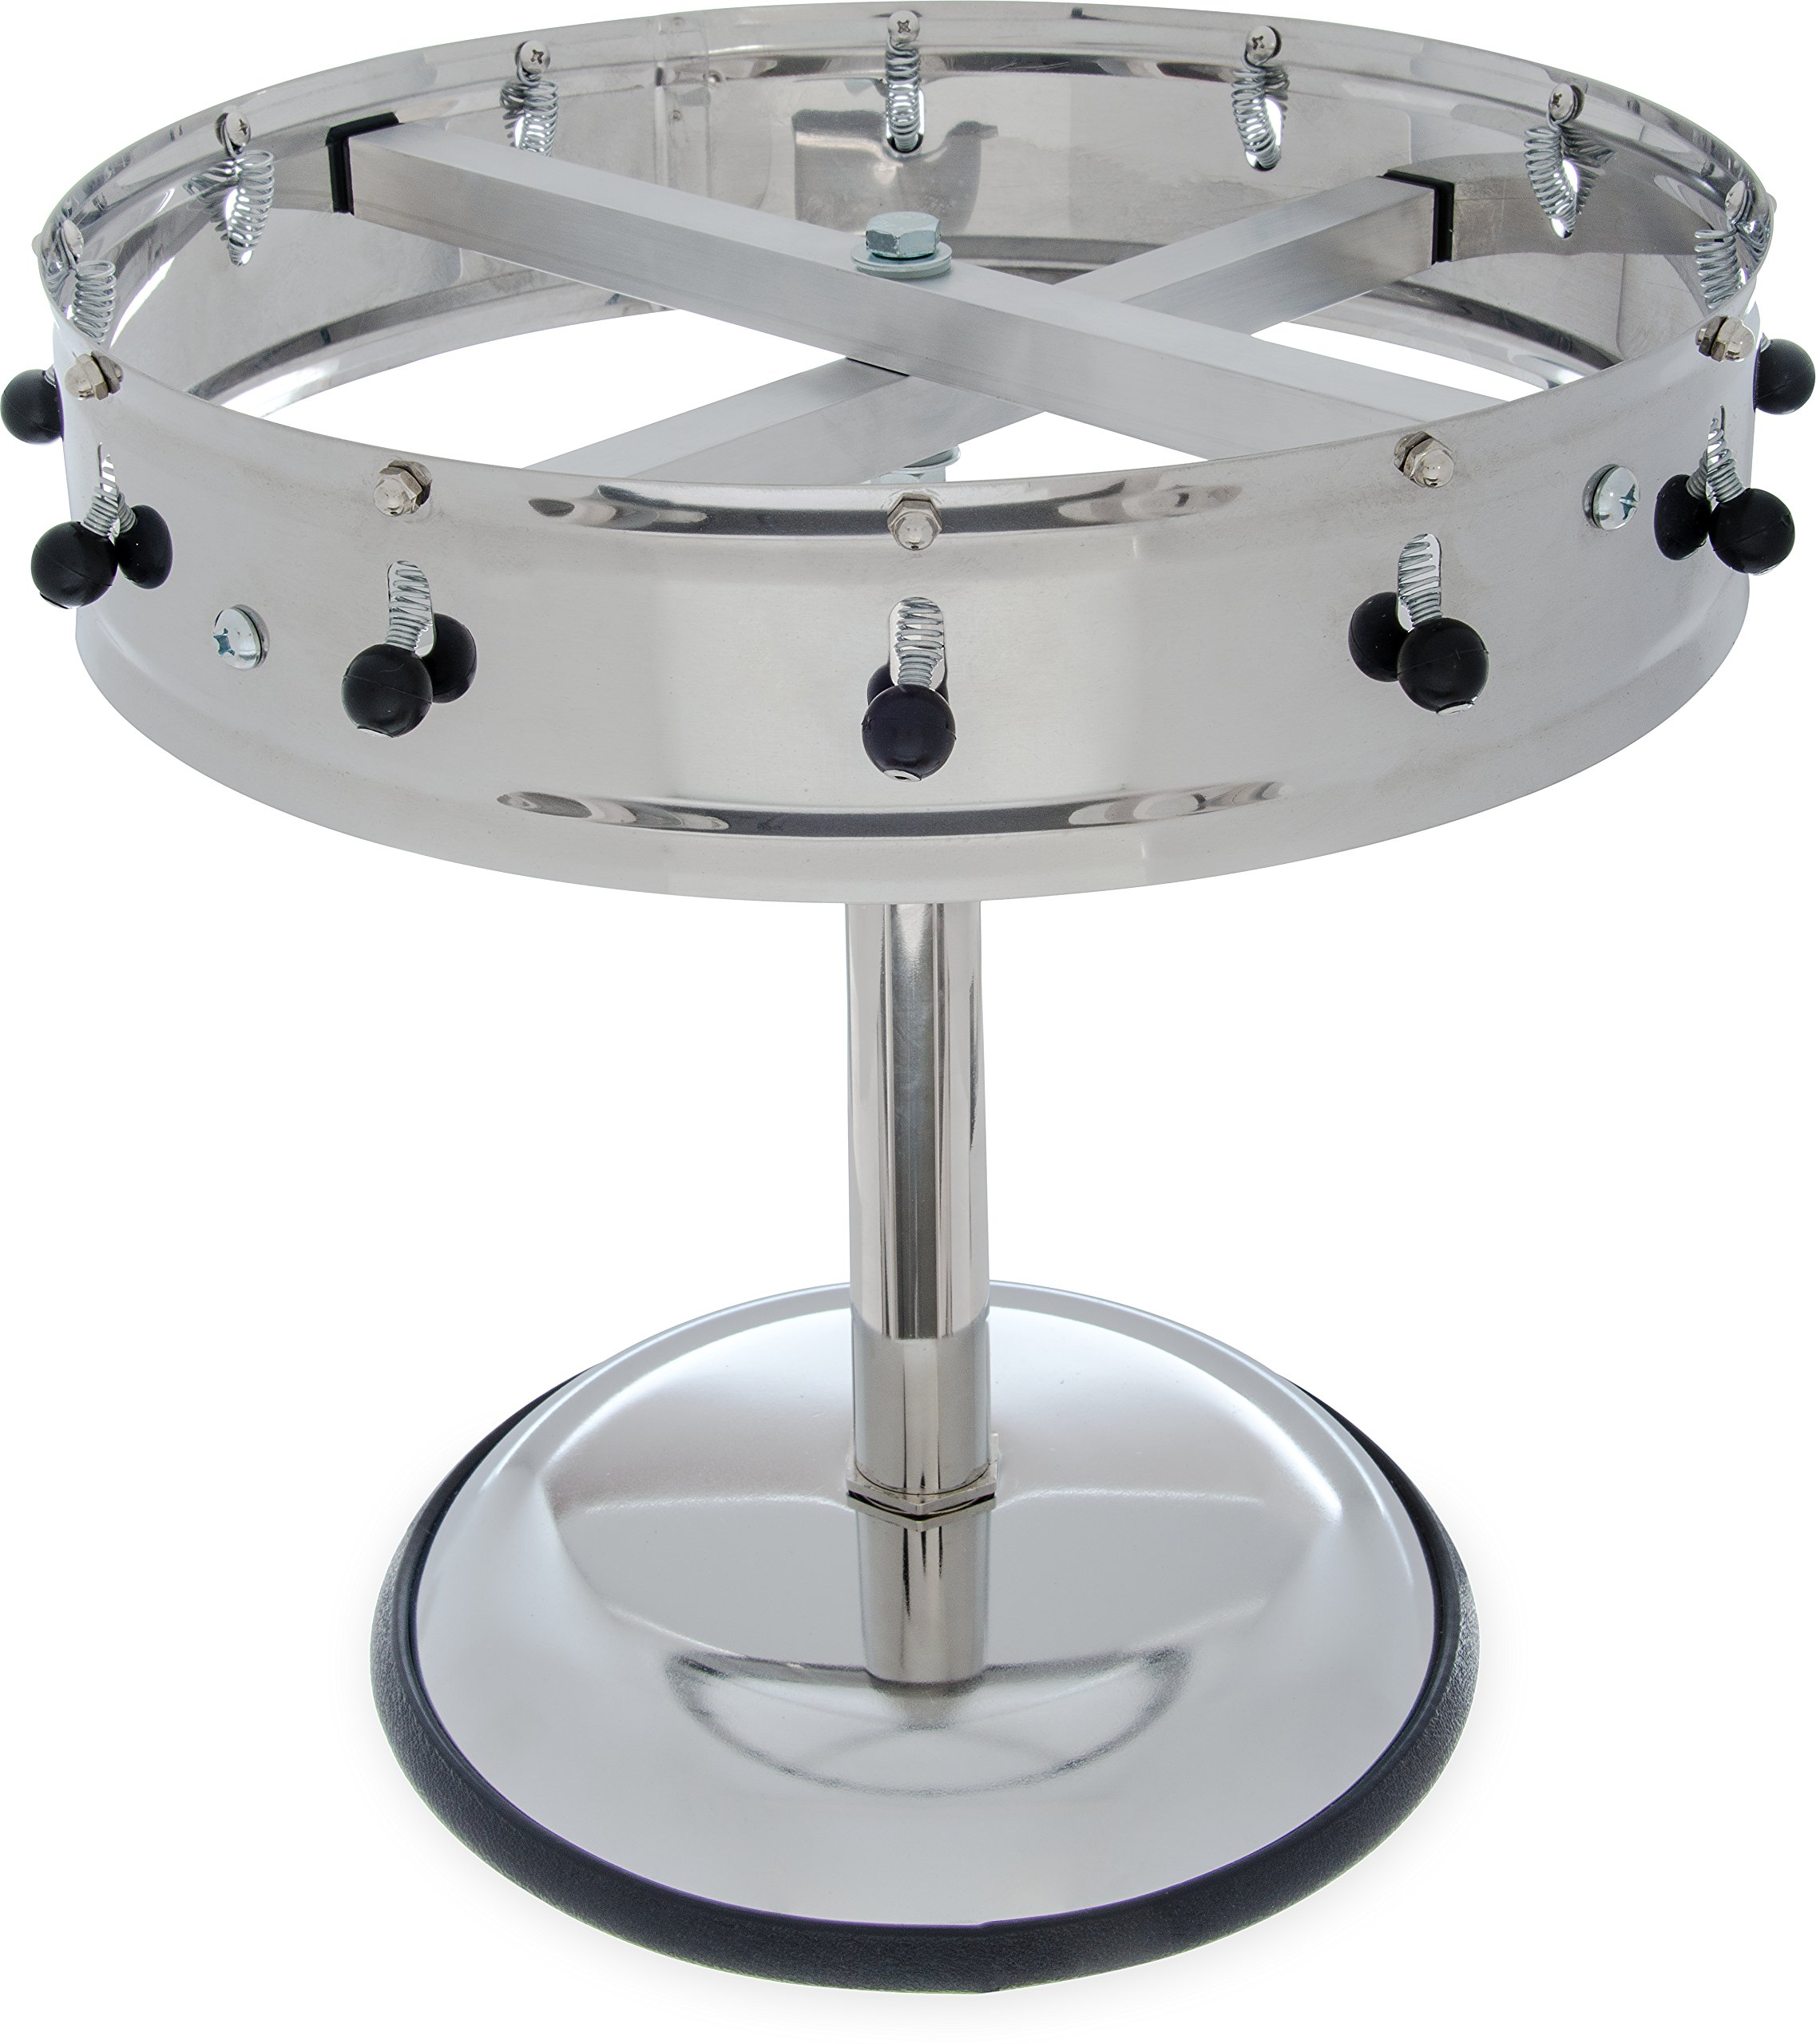 Carlisle 3812MP Stainless Steel Portable Order Wheel with 12 Clips, 14'' Diameter x 5.75'' Height by Carlisle (Image #1)